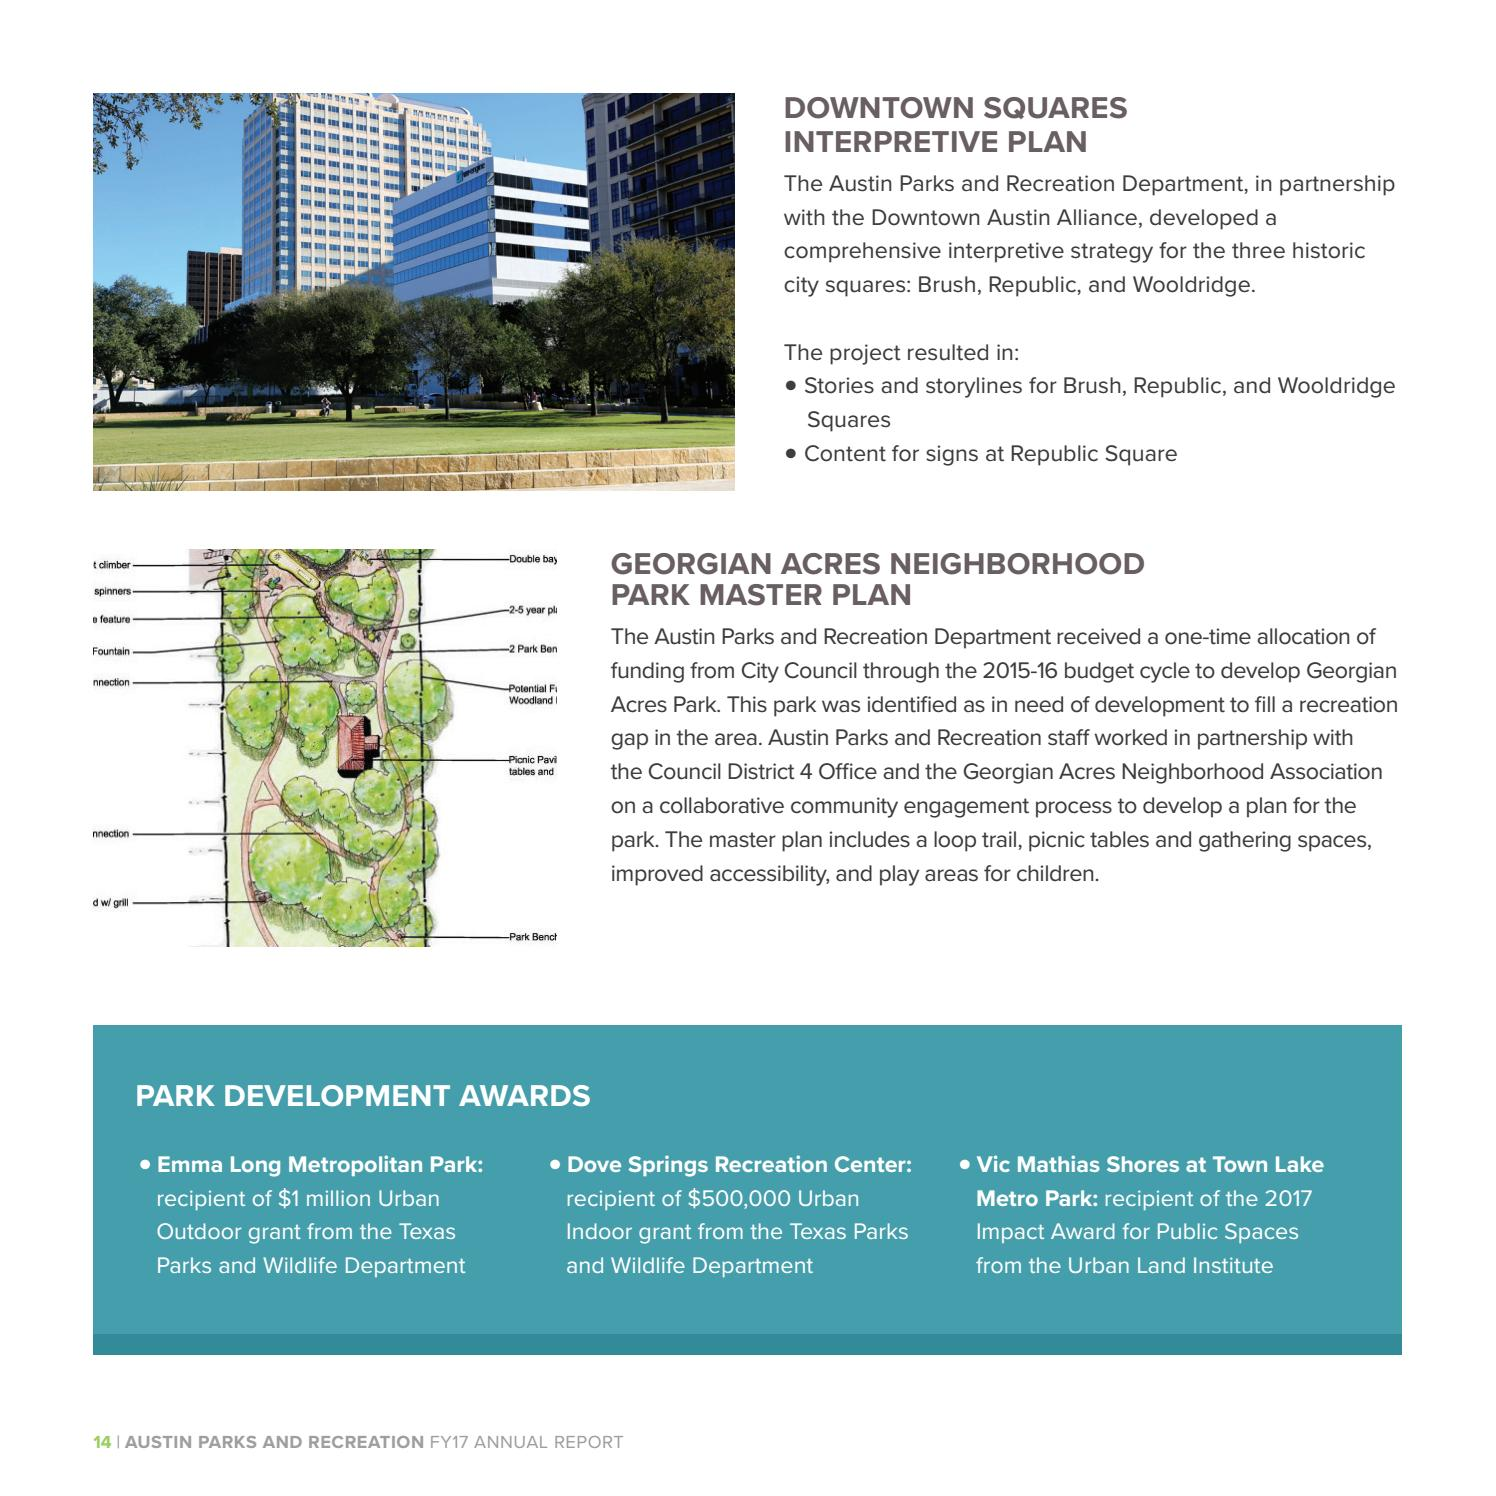 Austin Parks and Recreation Department FY17 Annual Report by